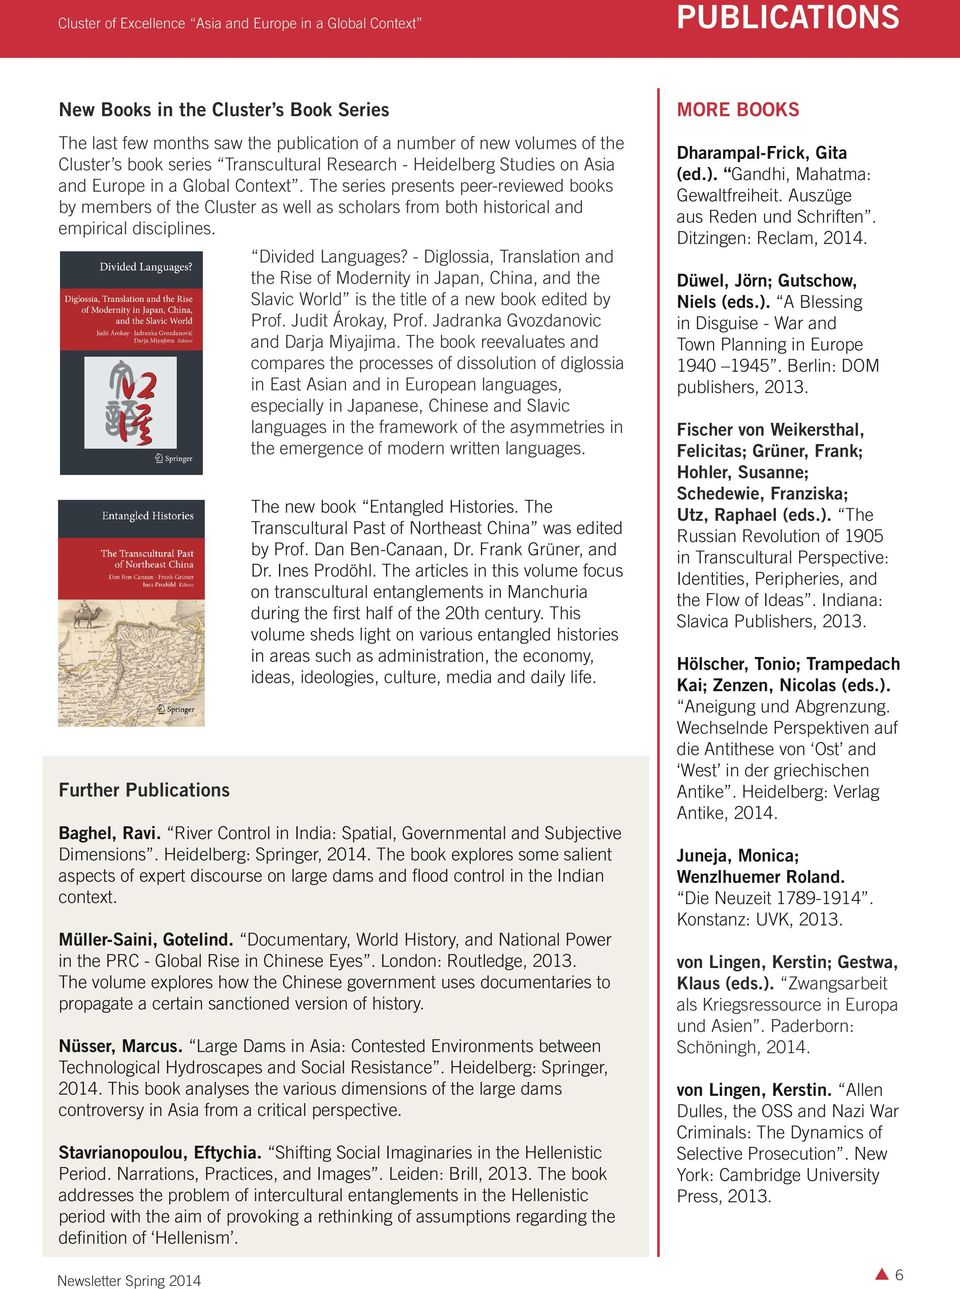 Further Publications Newsletter Spring 2014 Divided Languages? - Diglossia, Translation and the Rise of Modernity in Japan, China, and the Slavic World is the title of a new book edited by Prof.